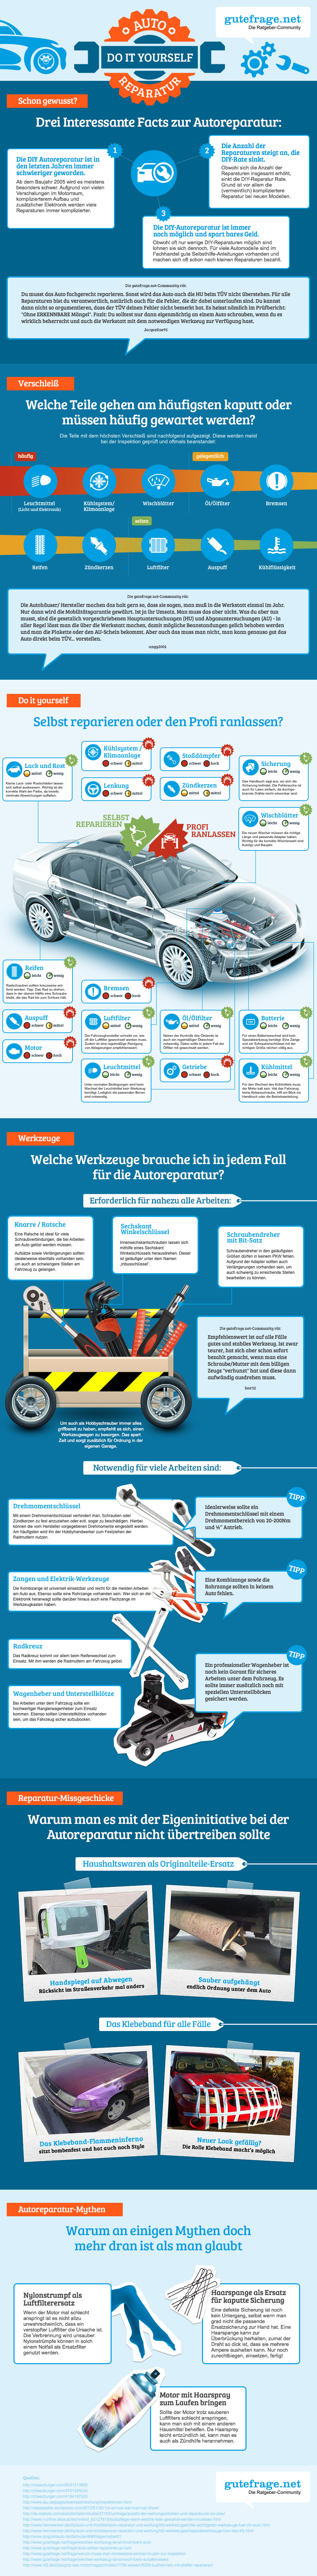 Die Do-It-Yourself-Autoreparatur – wie man das Auto selbst repariert